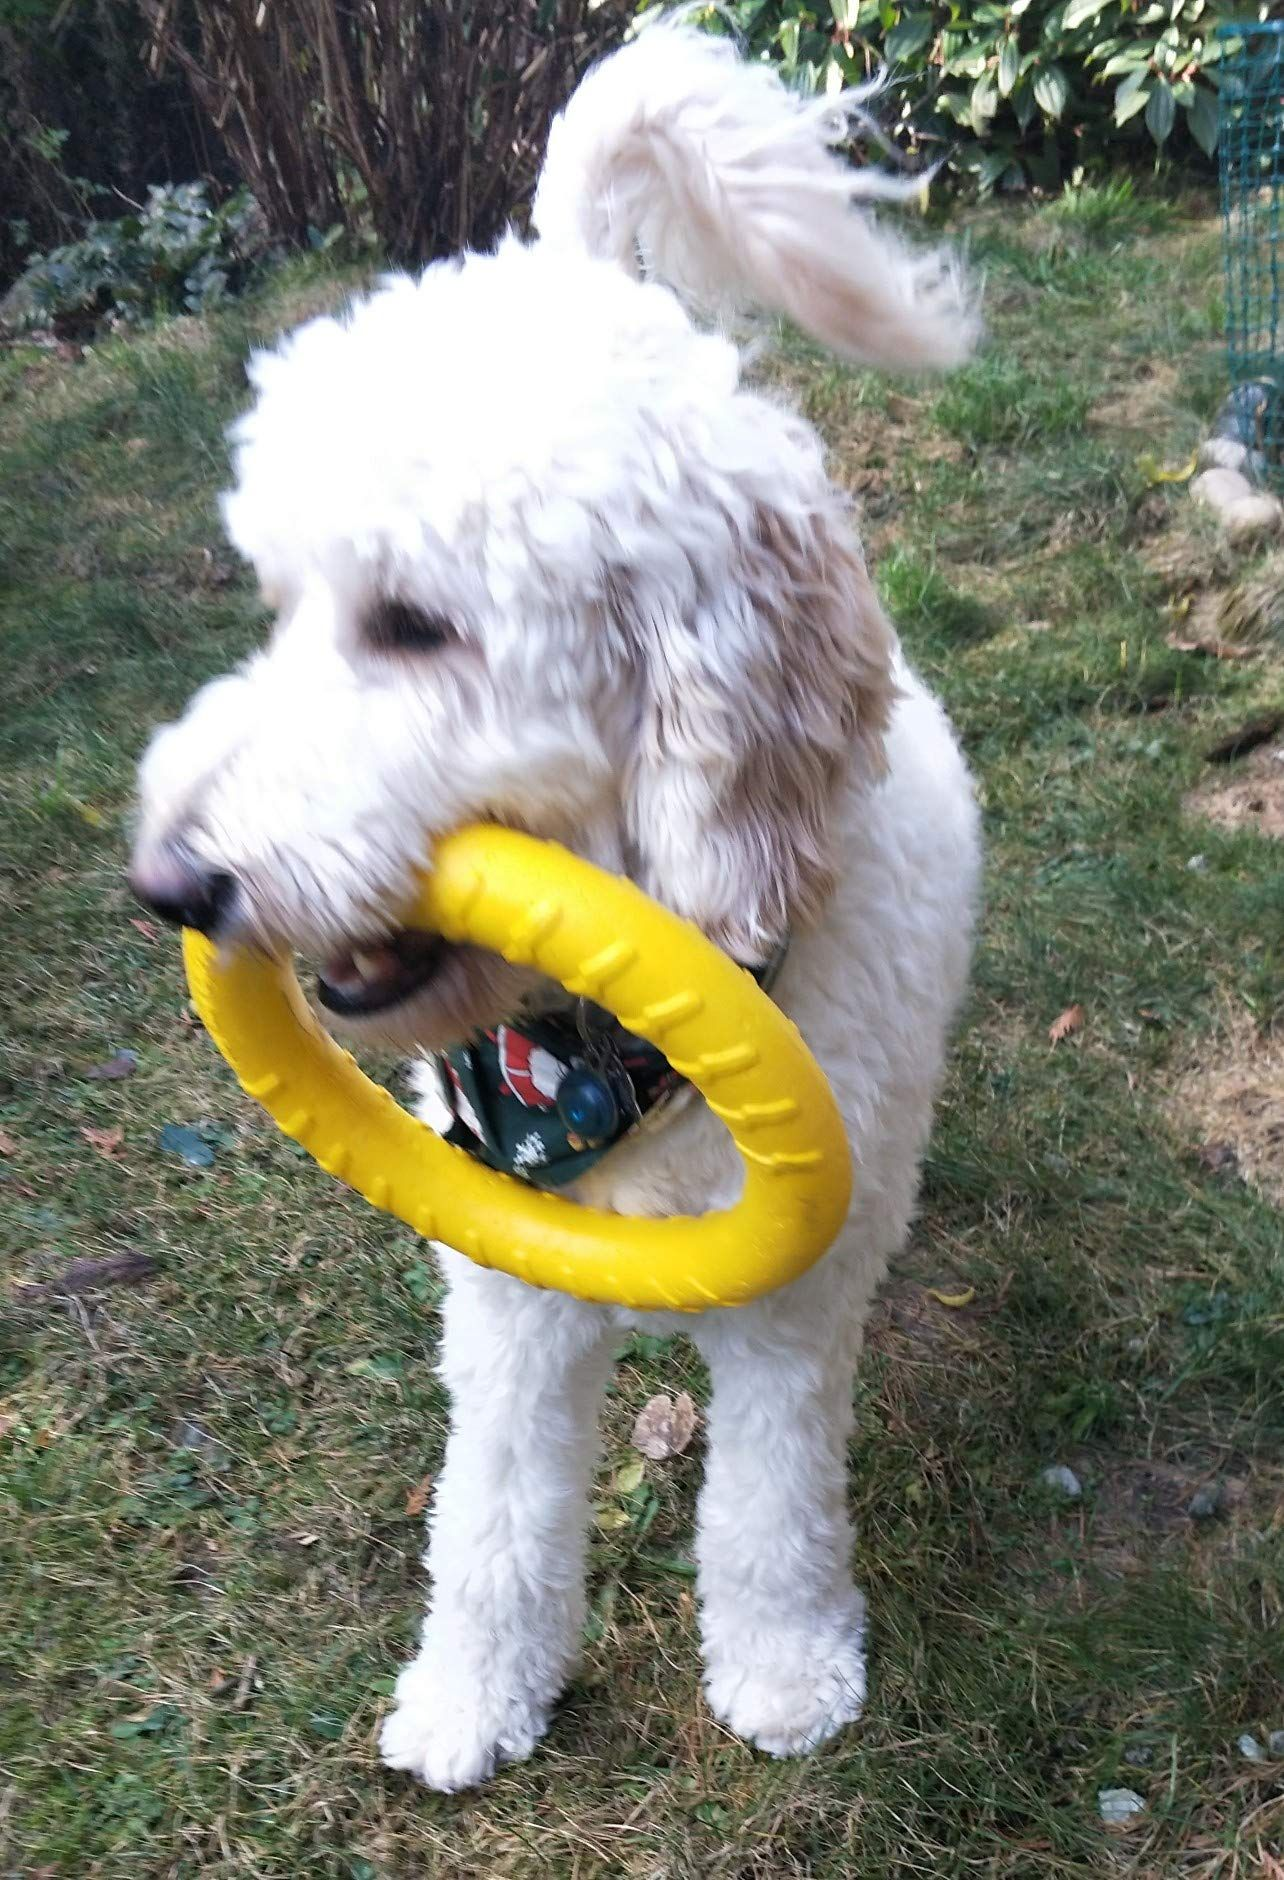 MASKOTA Rubber Ring Dog Toy for Tug War Fun for Throw